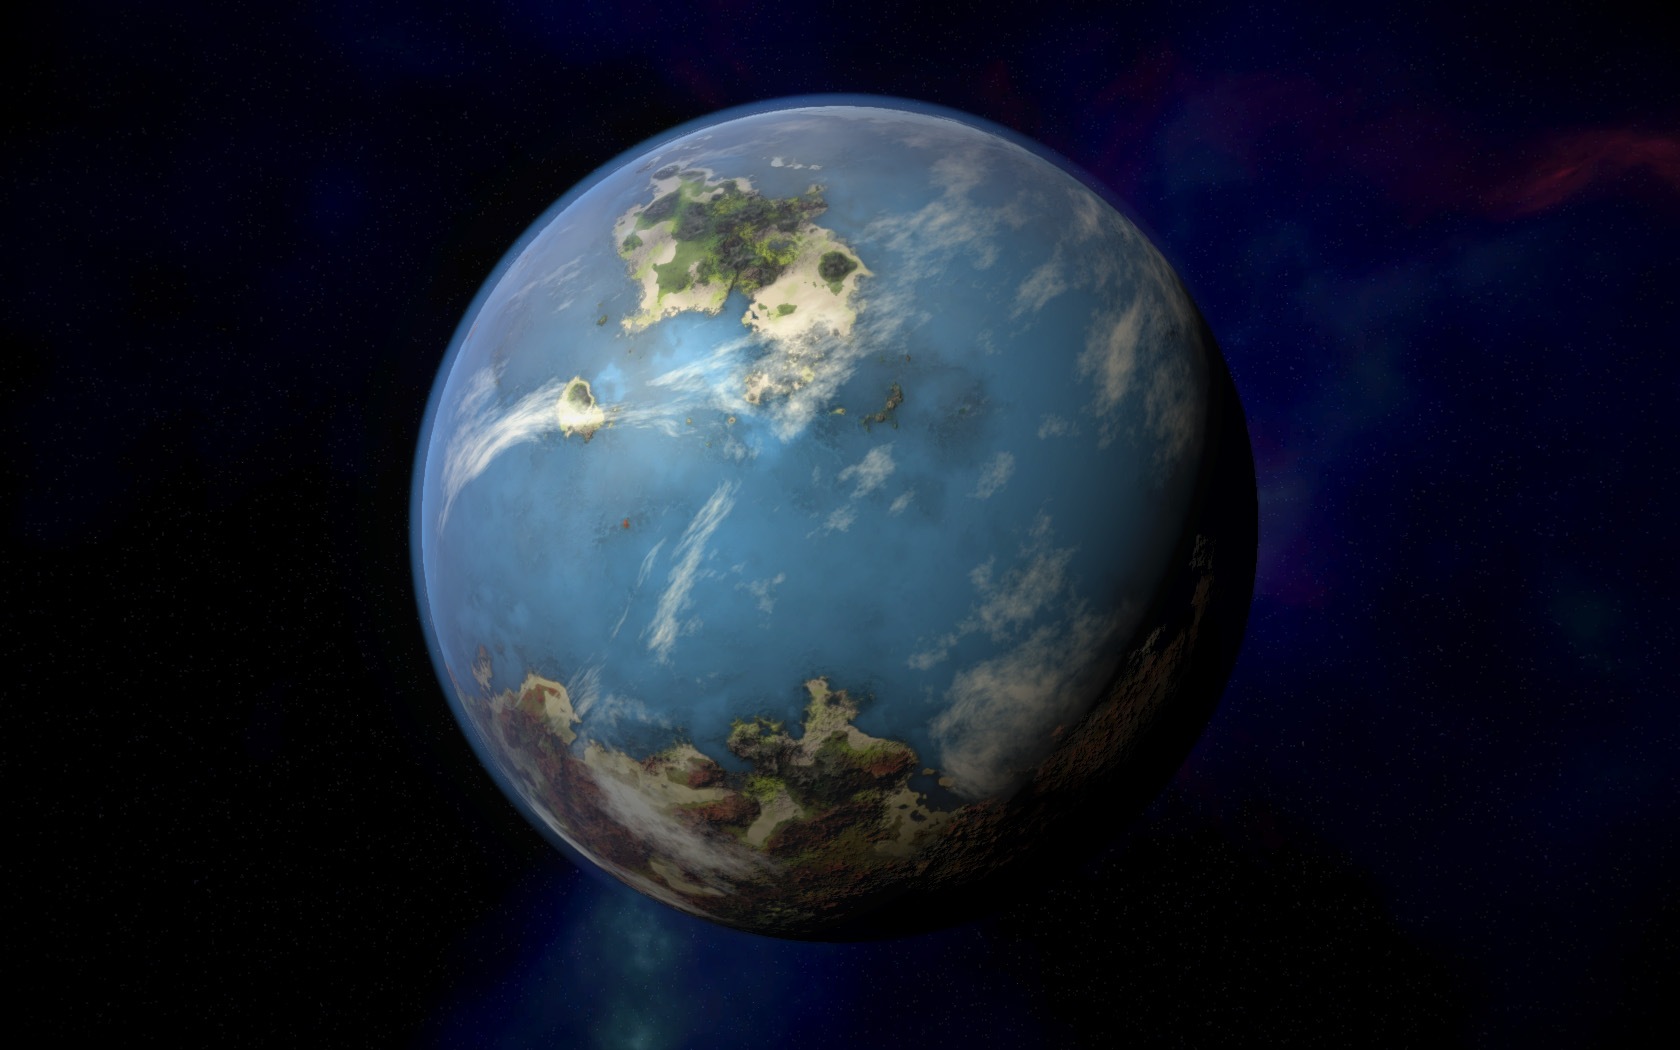 terrestrial planets have moons - photo #15